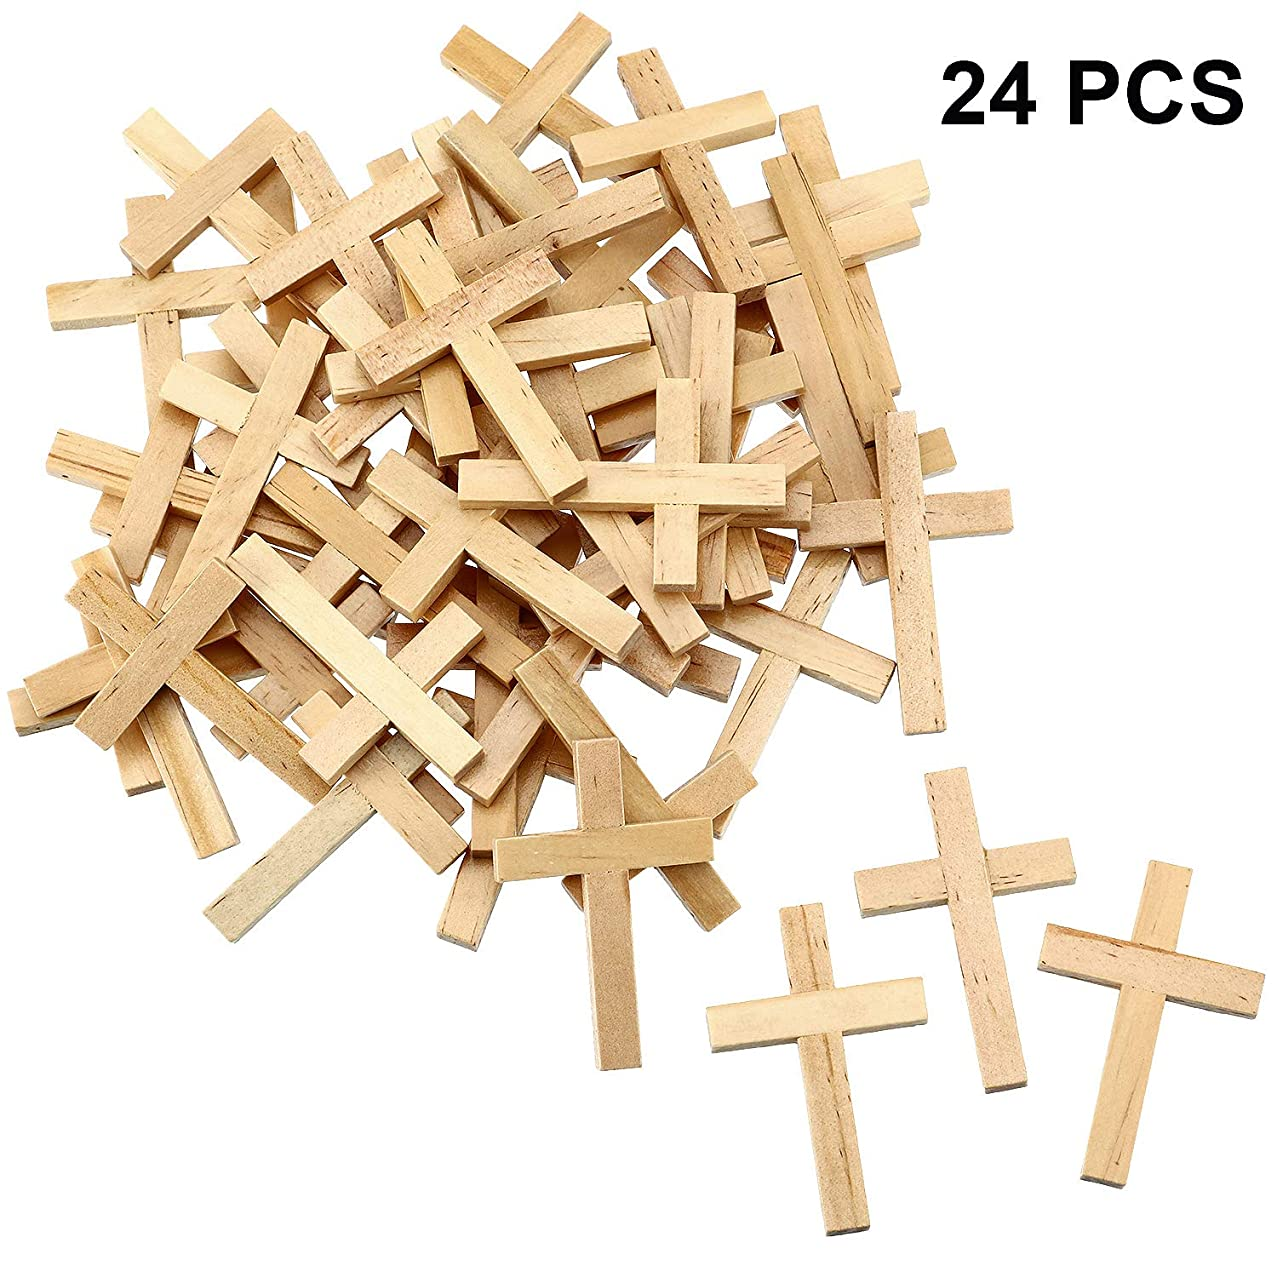 24 Pieces Natural Wooden Cross Wood Cross Pendants Mini Cross Beads for DIY Crafts Jewelry Making